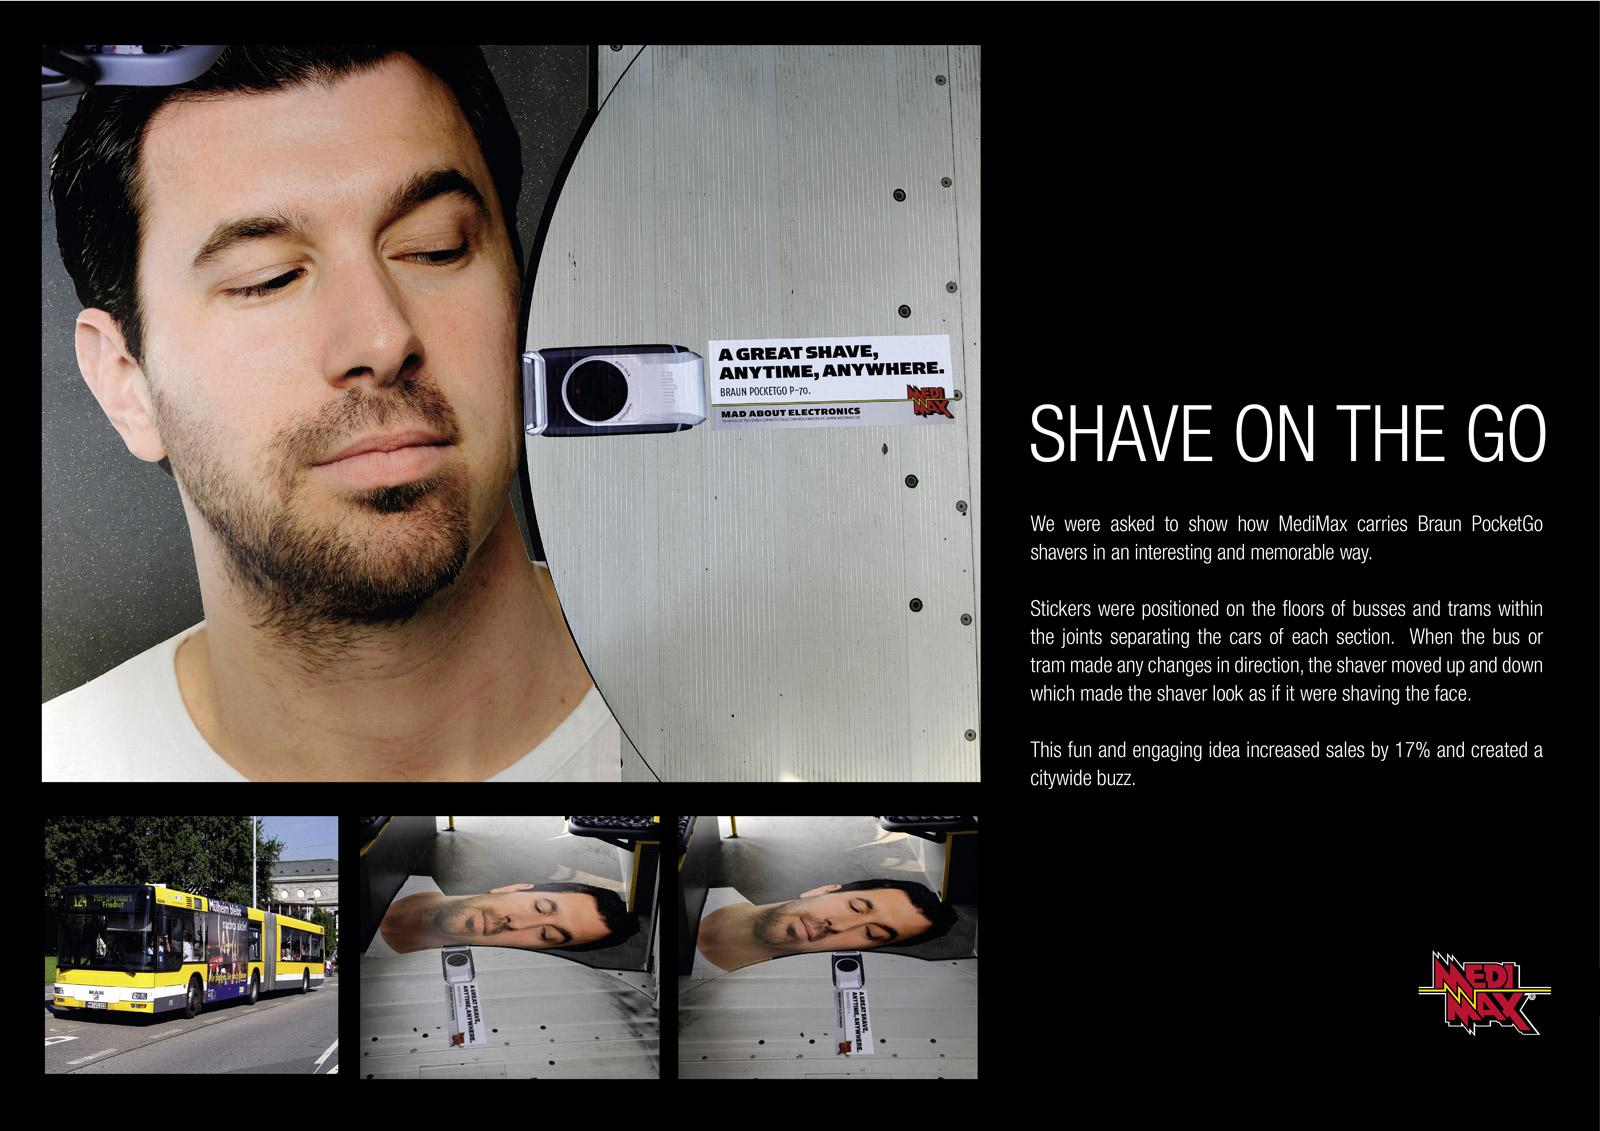 MediMax Outdoor Ad -  Shave on the go